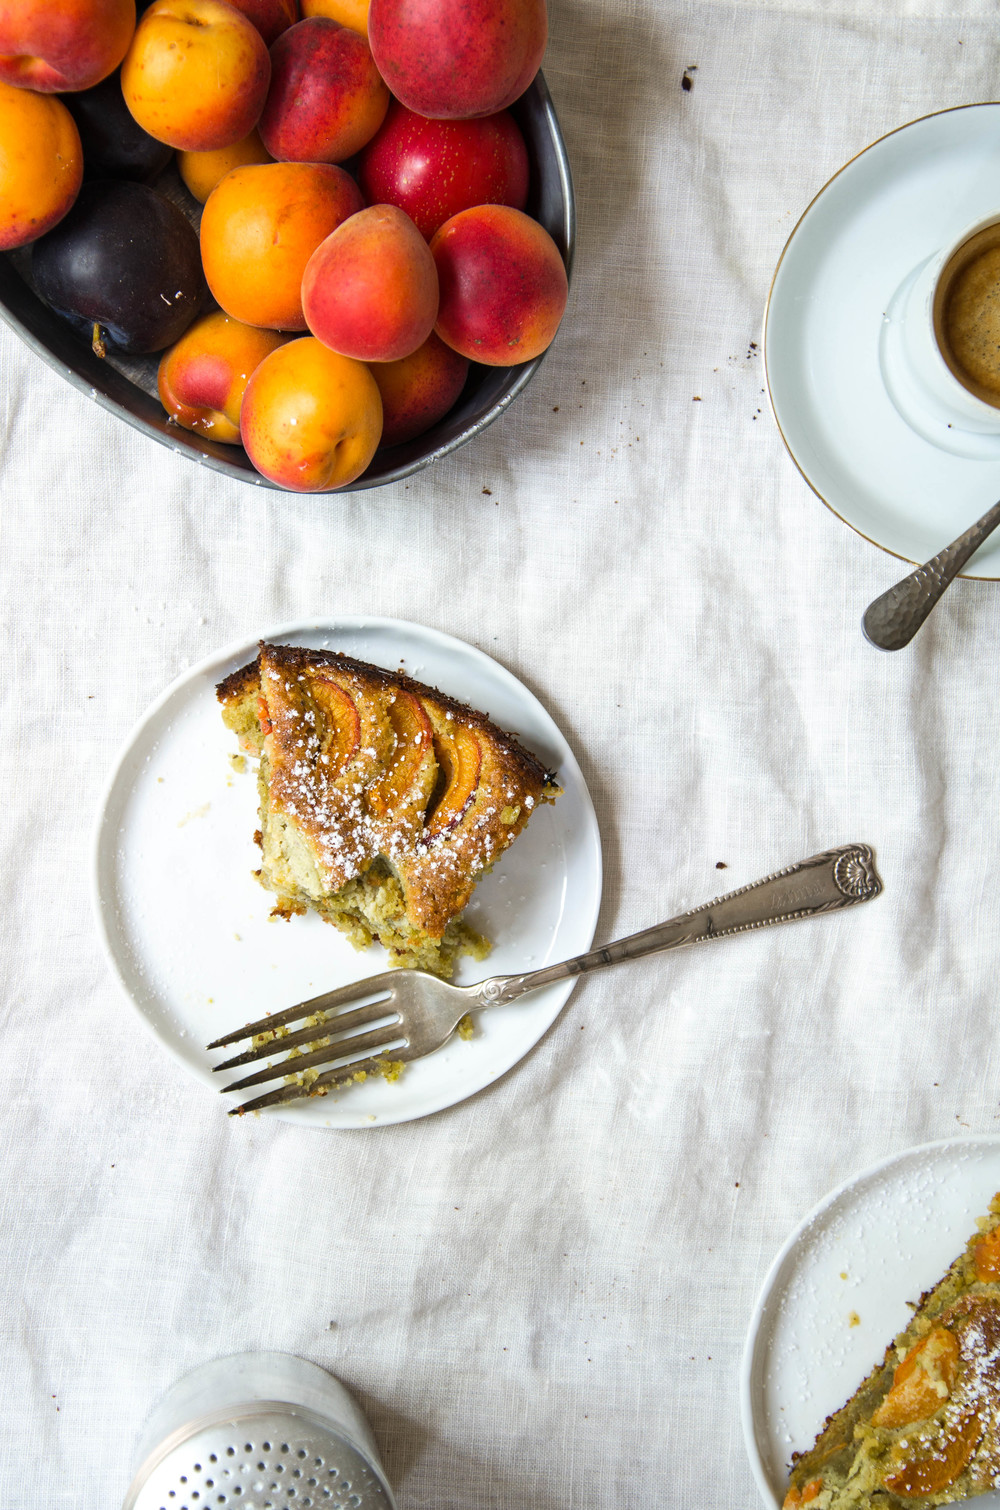 ROSE & IVY Journal Almond Apricot Pistachio Cake